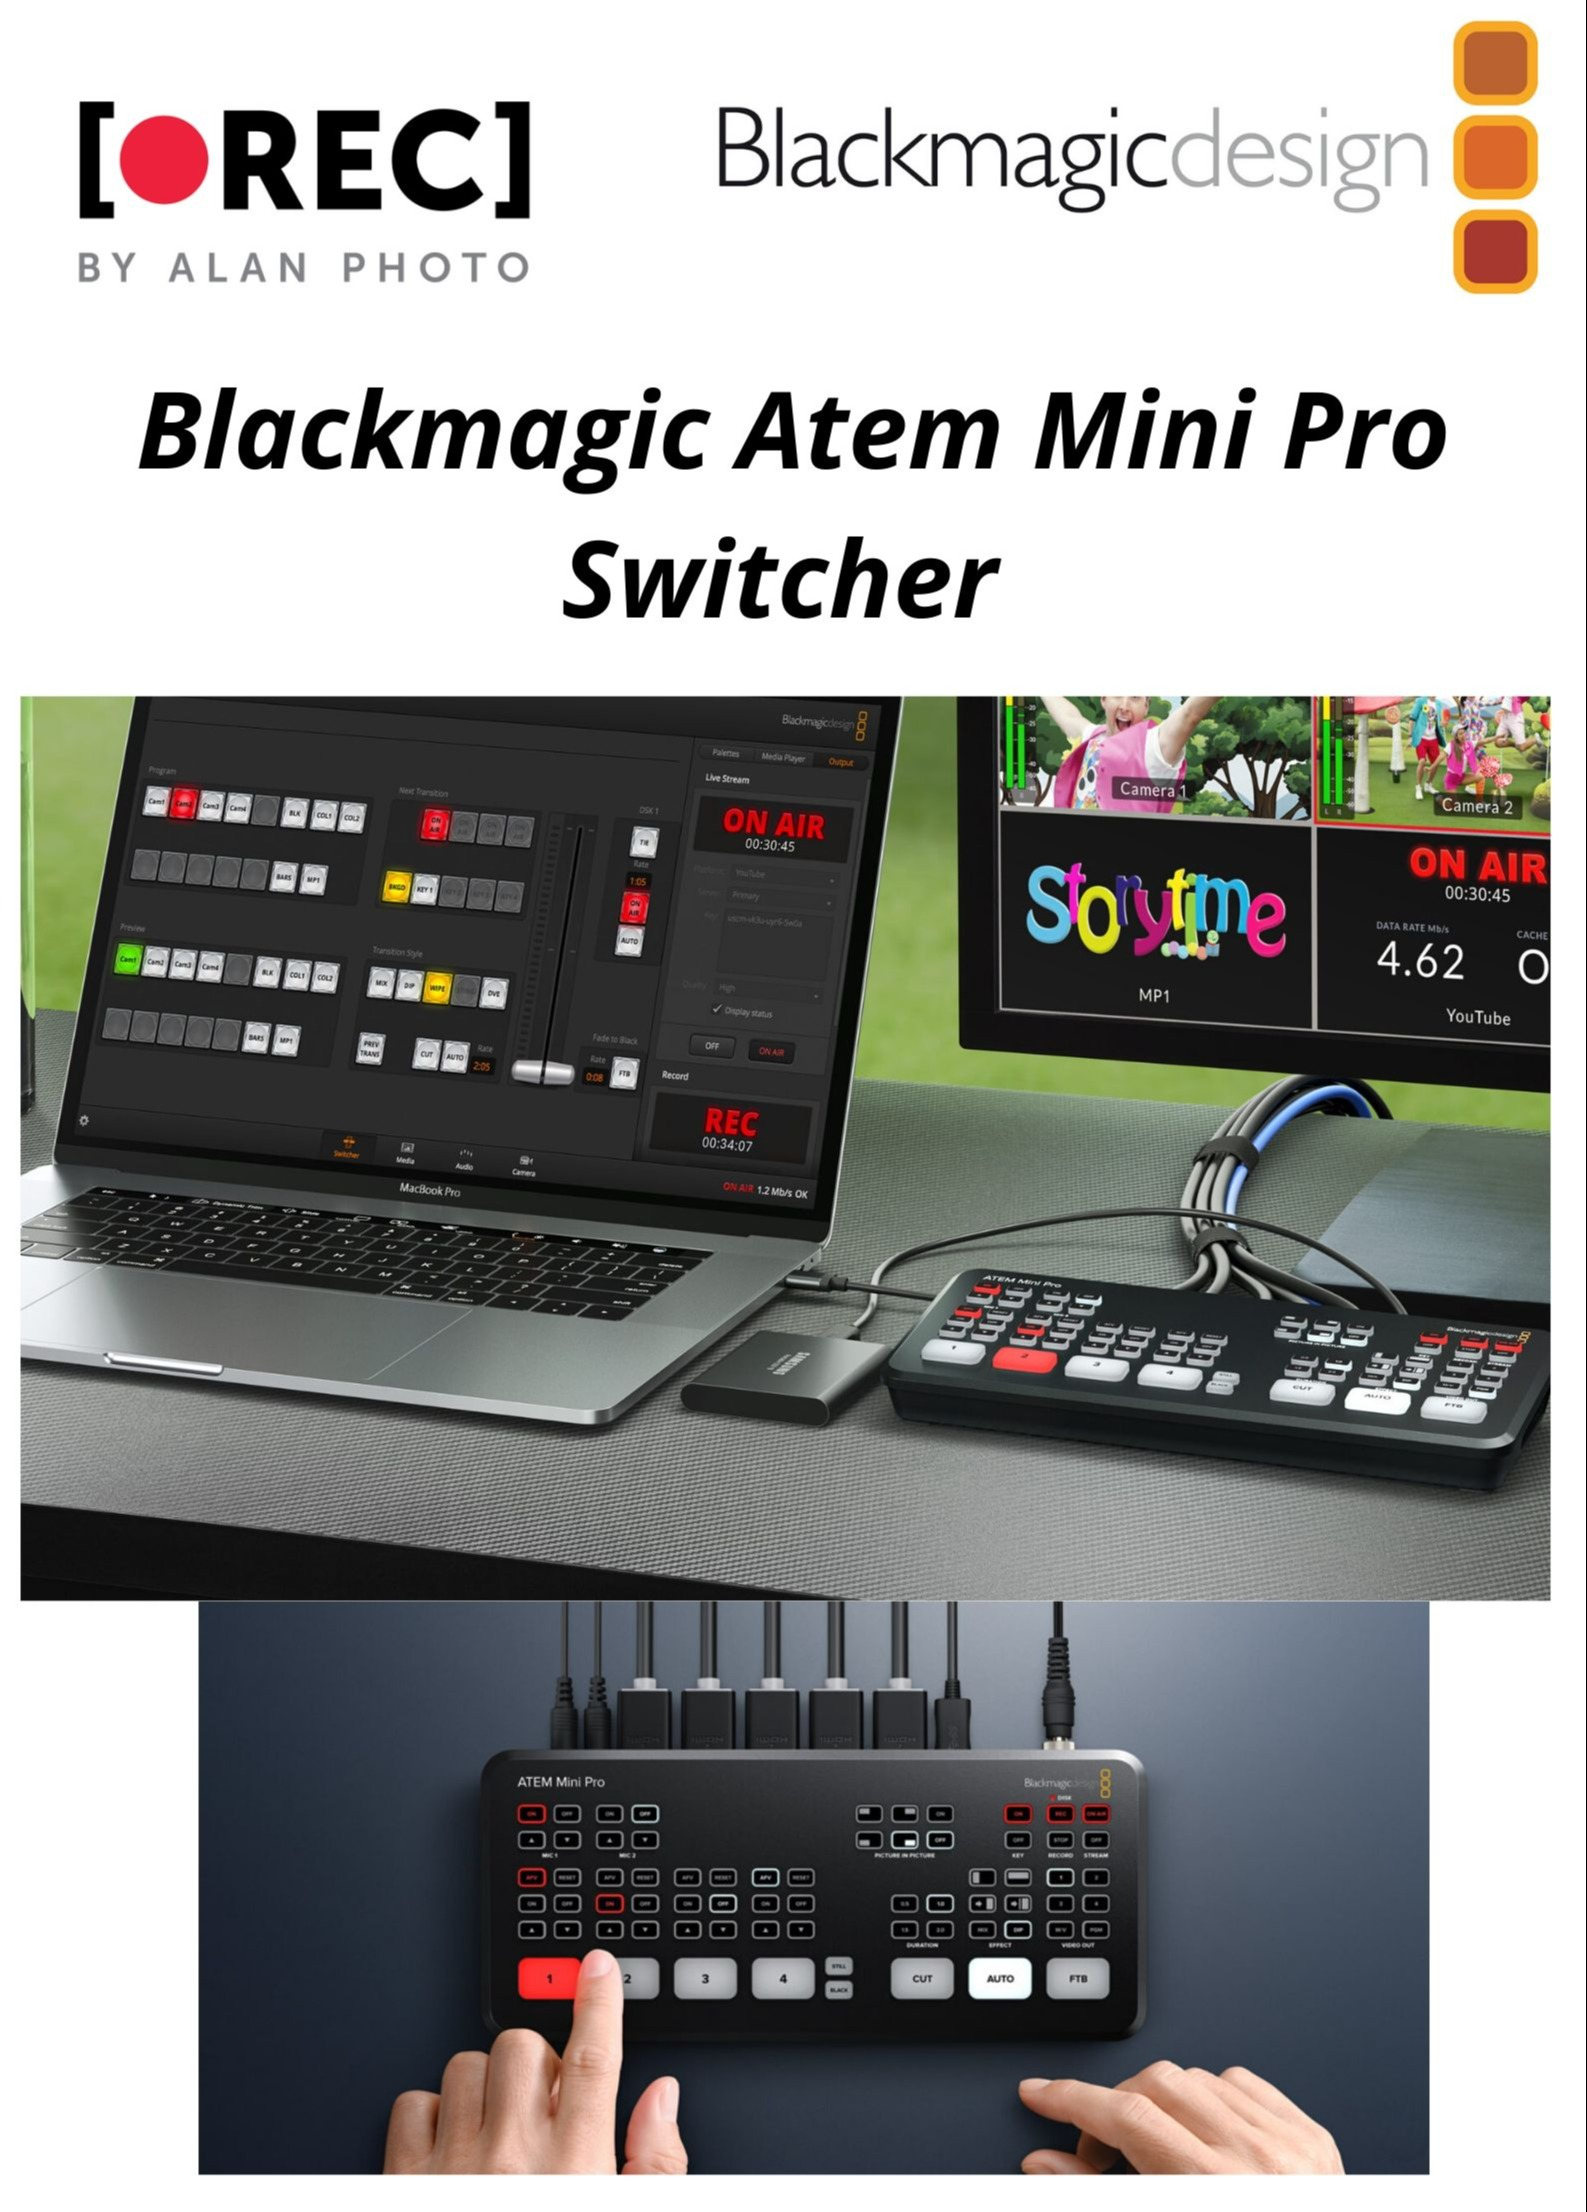 Blackmagic Design Atem Mini Pro.